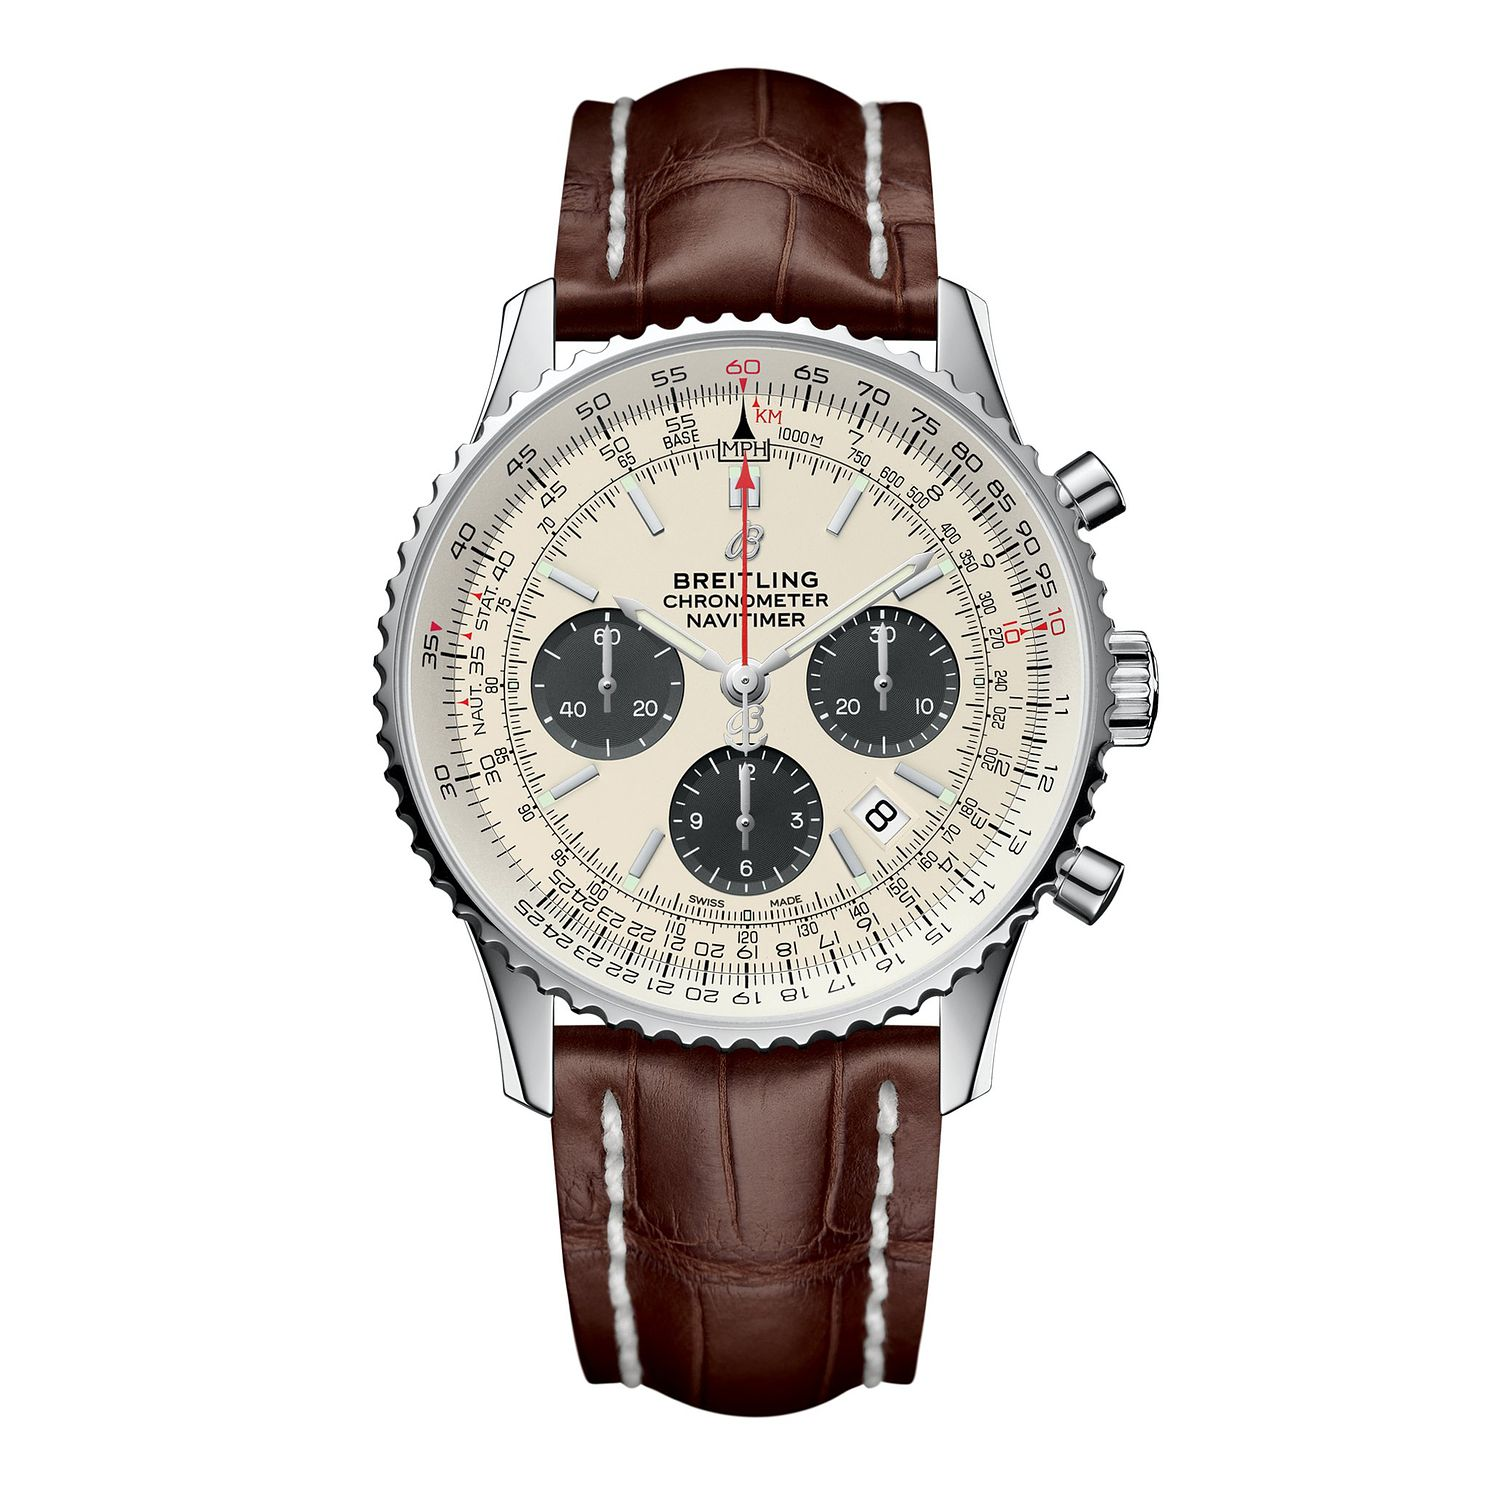 Breitling Navitimer 01 Men's Brown Leather Strap Watch - Product number 9303871